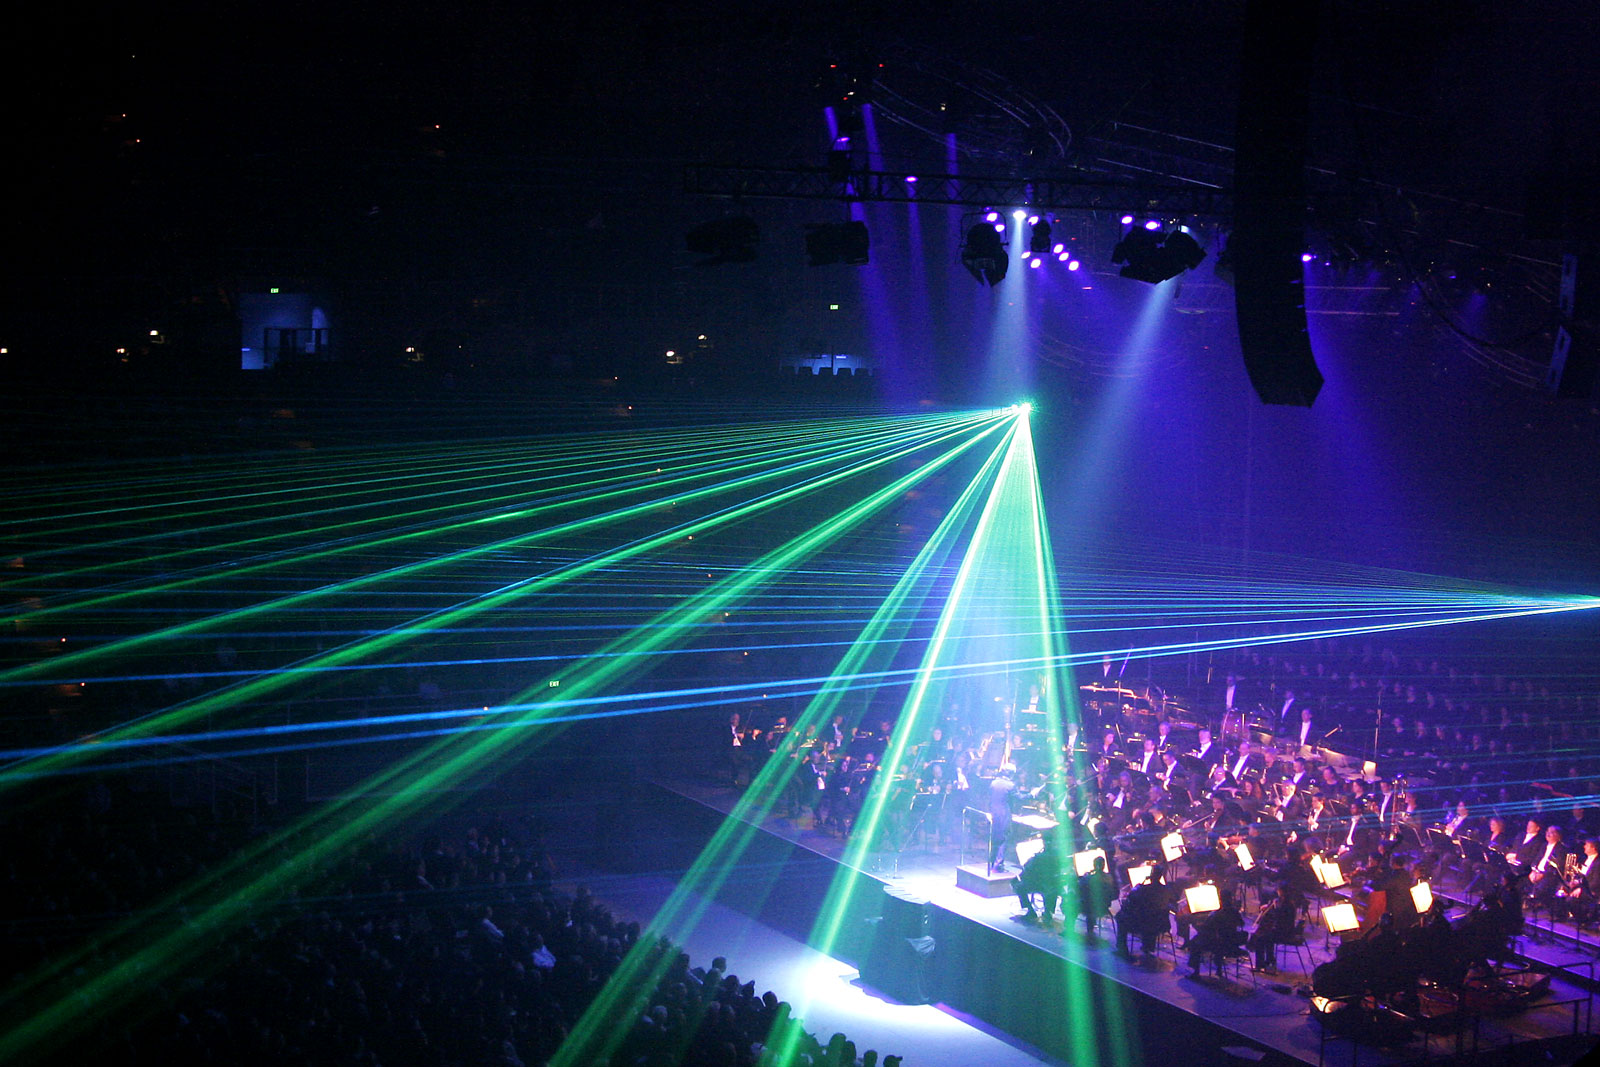 Low Intensity Lighting And Haze In A Concert Hall Allows Laser Effects To Be Visible